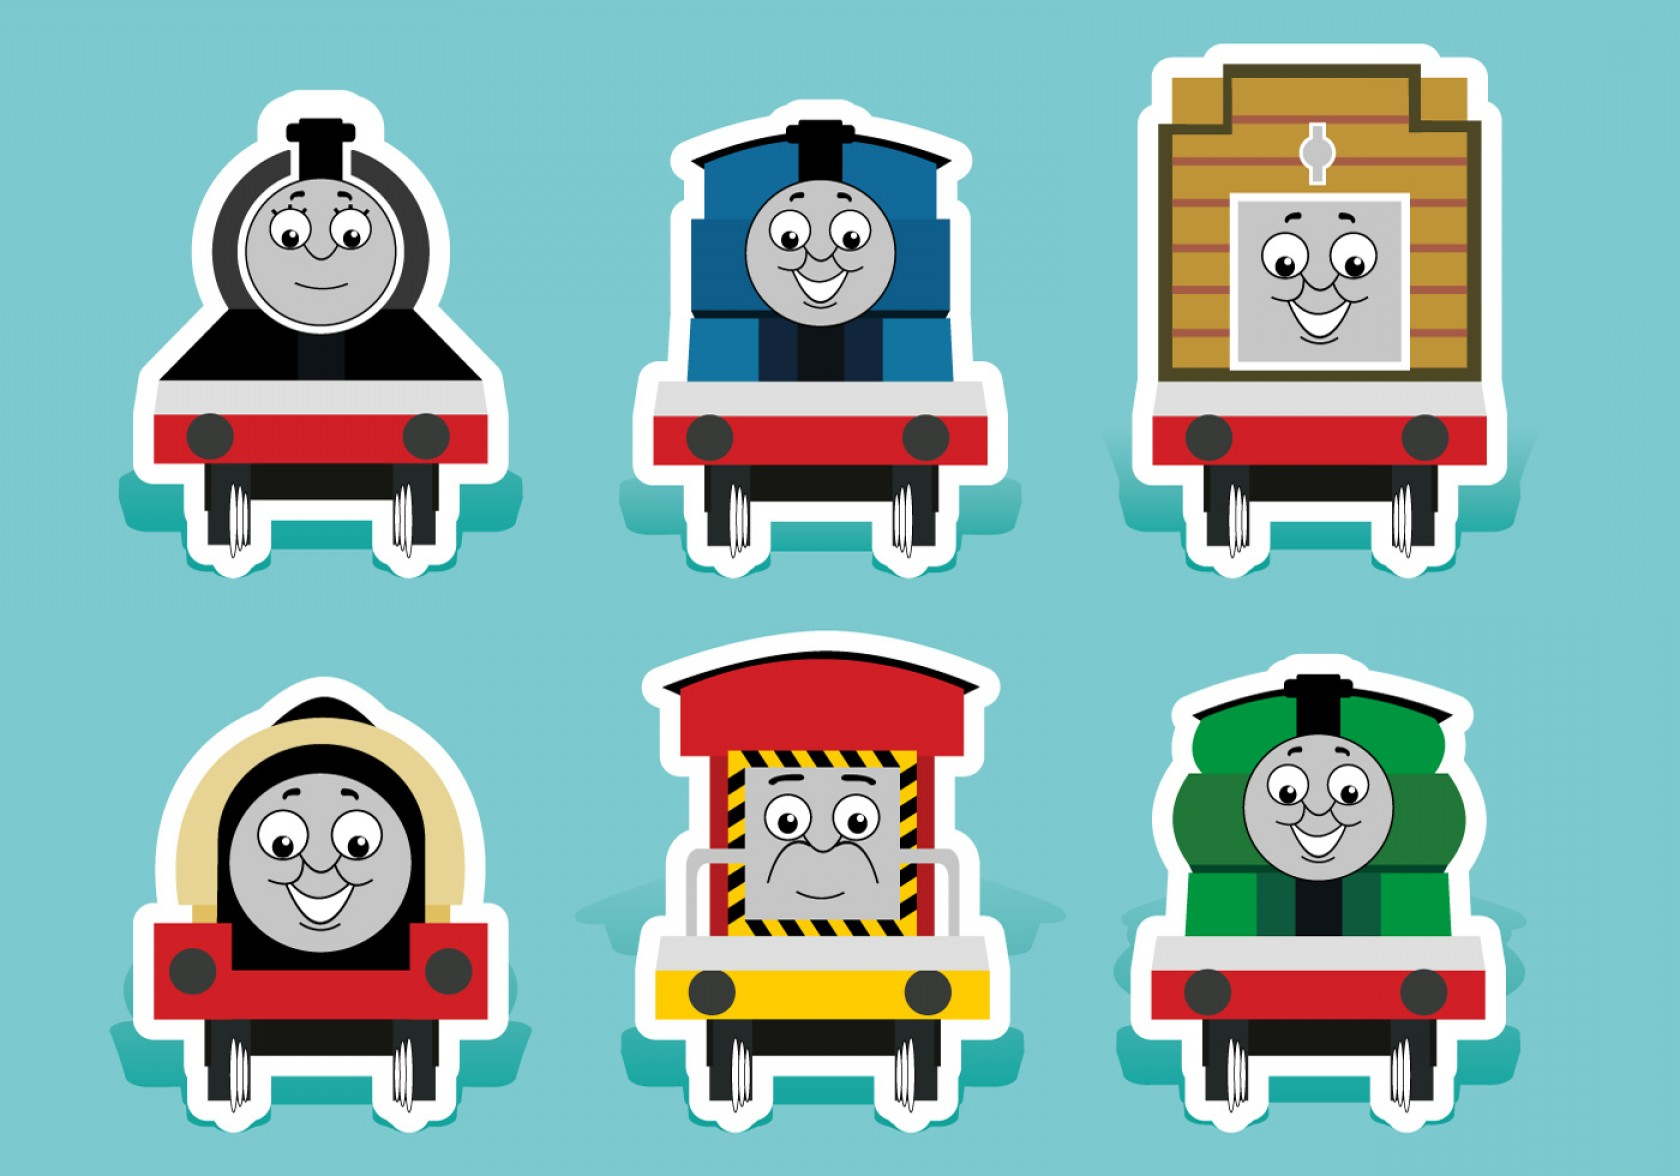 Thomas And Thomas Vector: Free Vector Thomas The Train Vectors